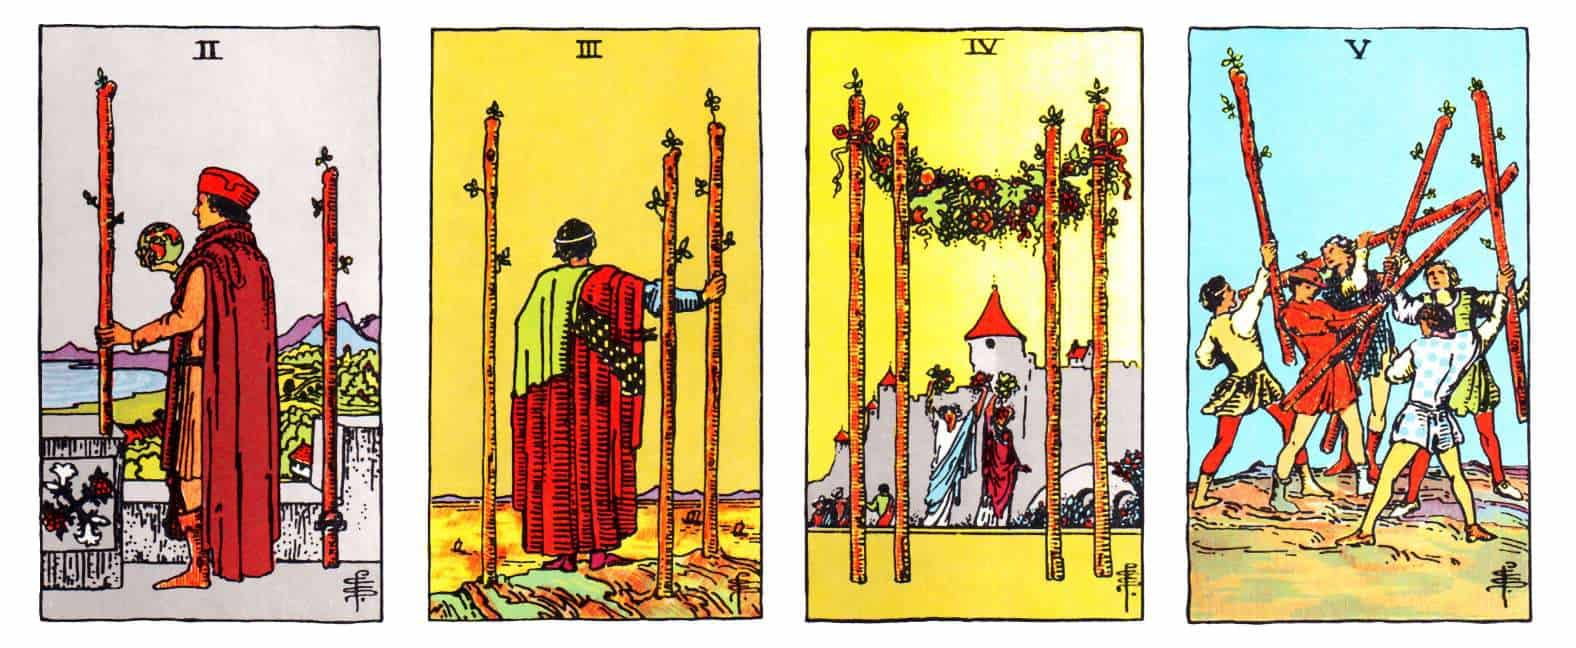 minor arcana suits of wands